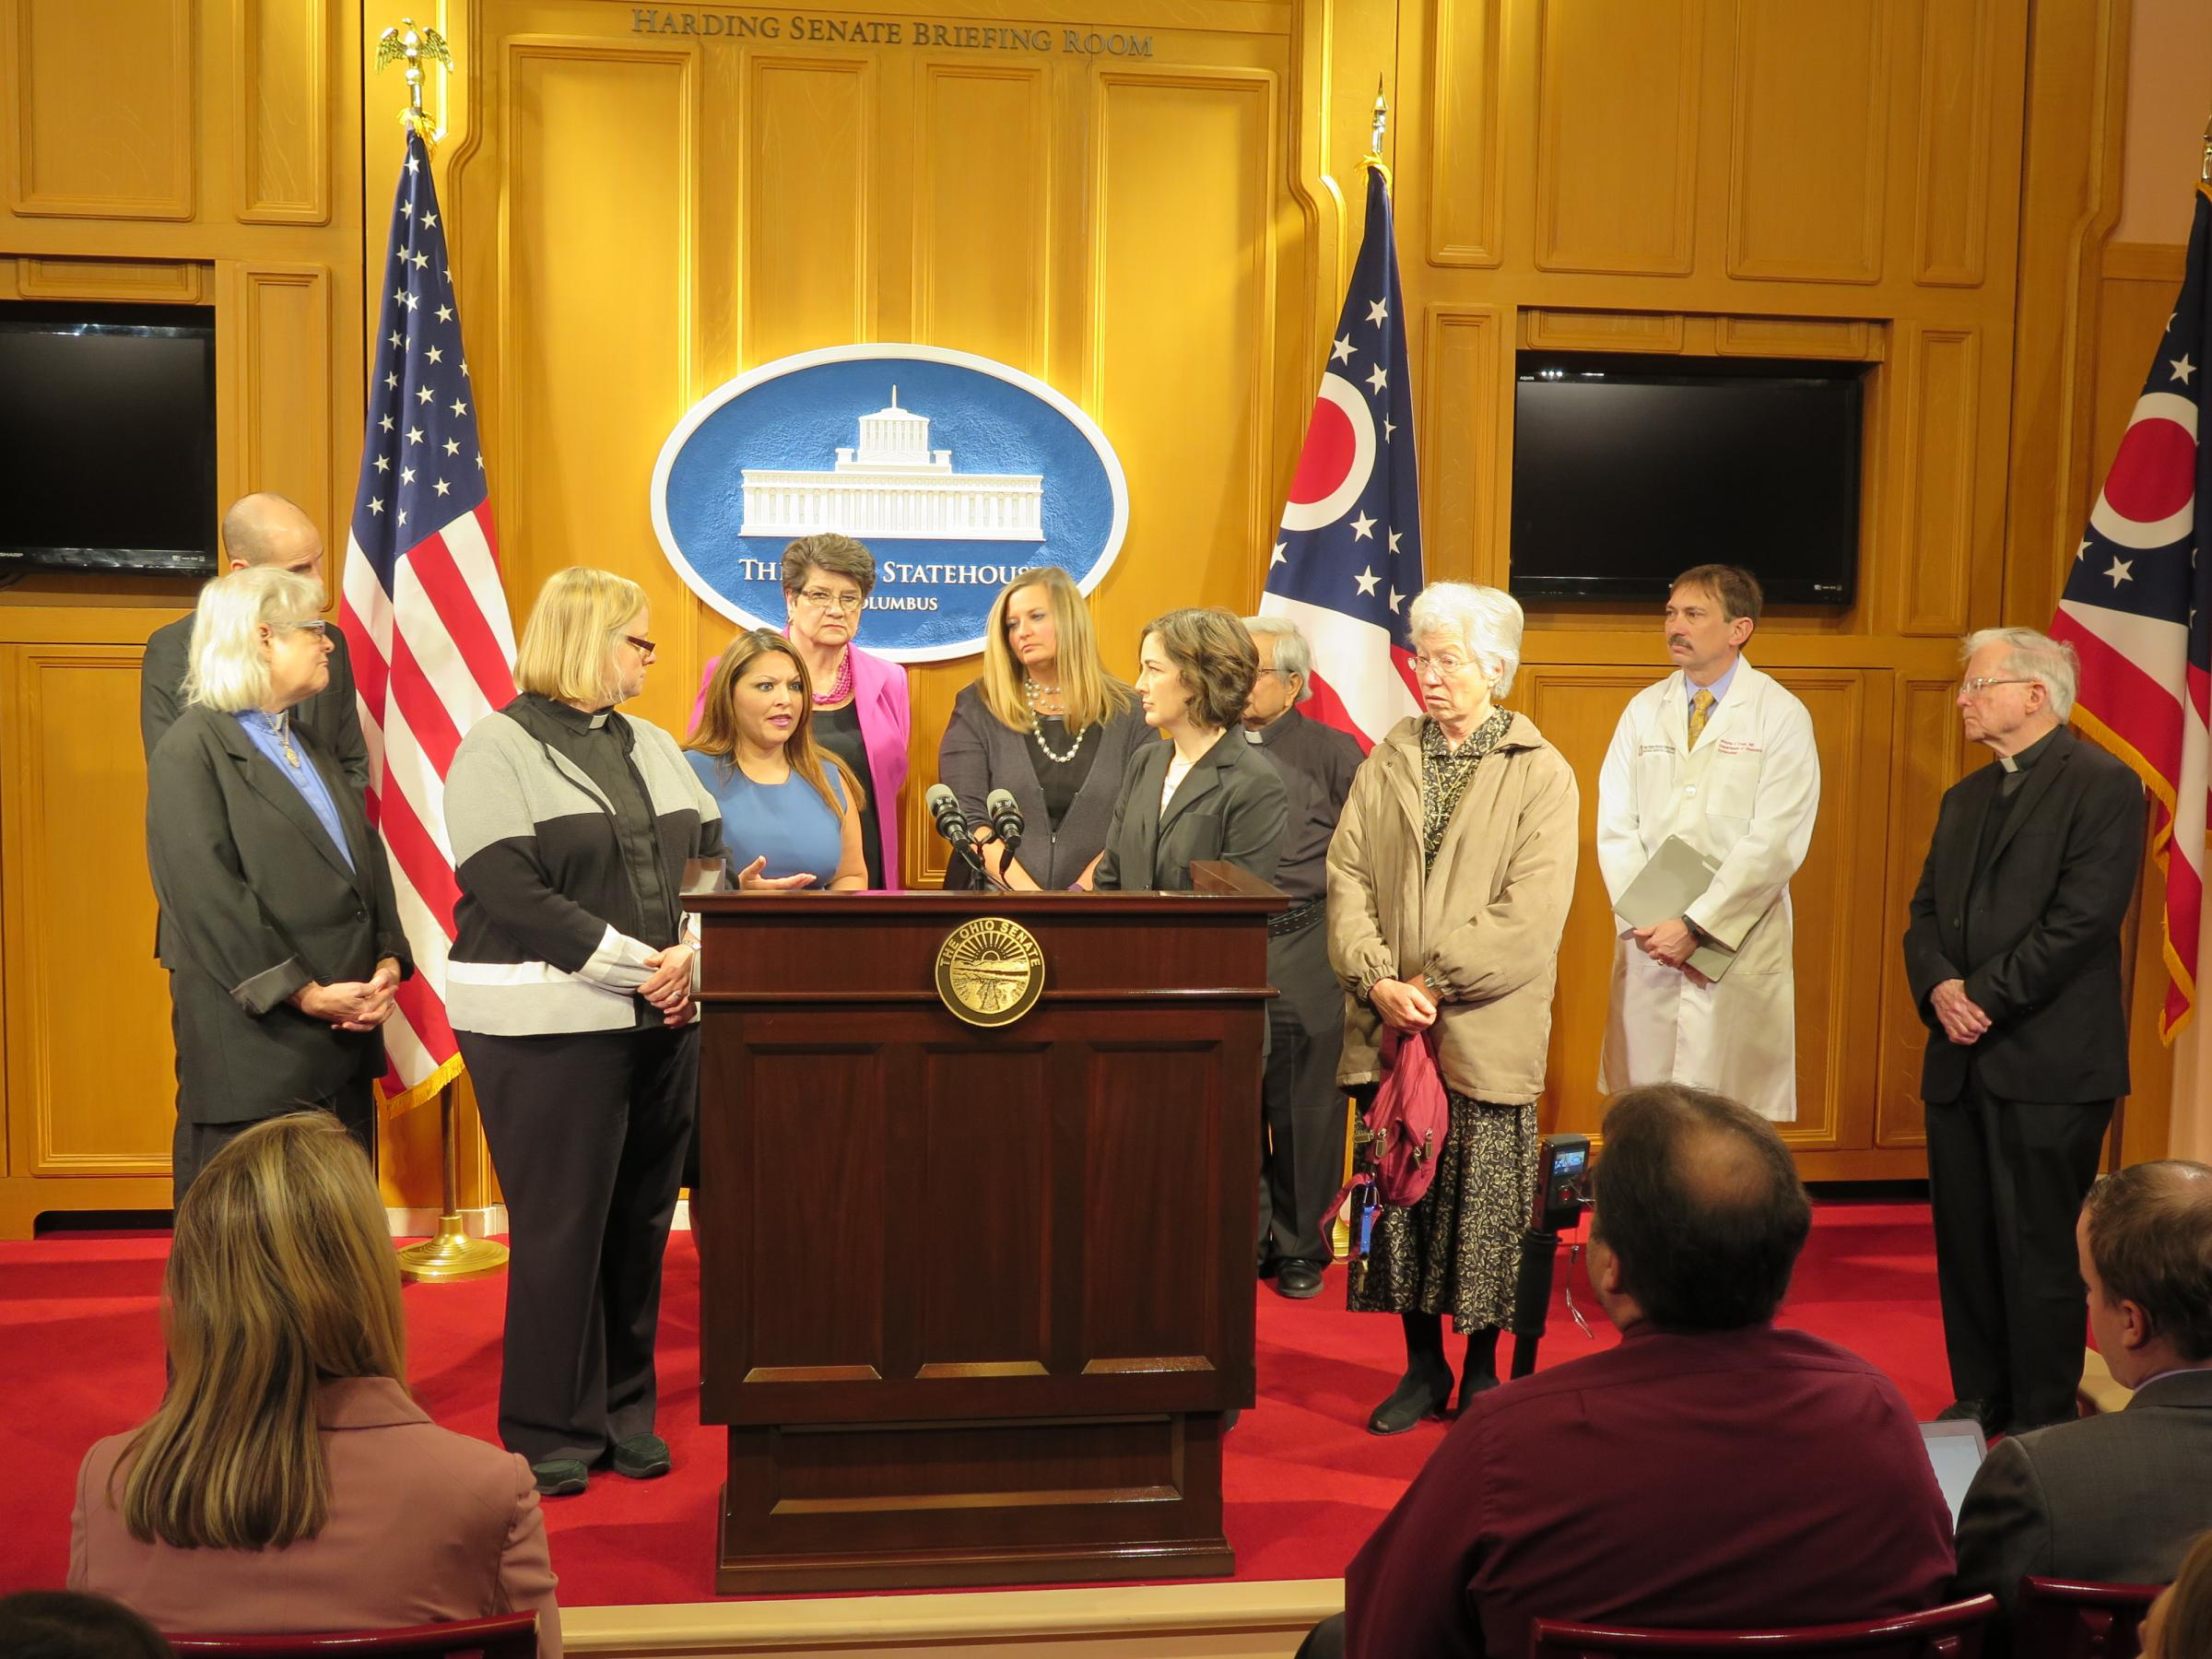 a review of ohio senators Ohio senators brown, portman react to bipartisan healthcare plan by jessica democratic senator sherrod brown of ohio says it's about time a bipartisan bill is finally please flag it for our moderators to review leave a reply cancel reply enter your comment here fill in your.